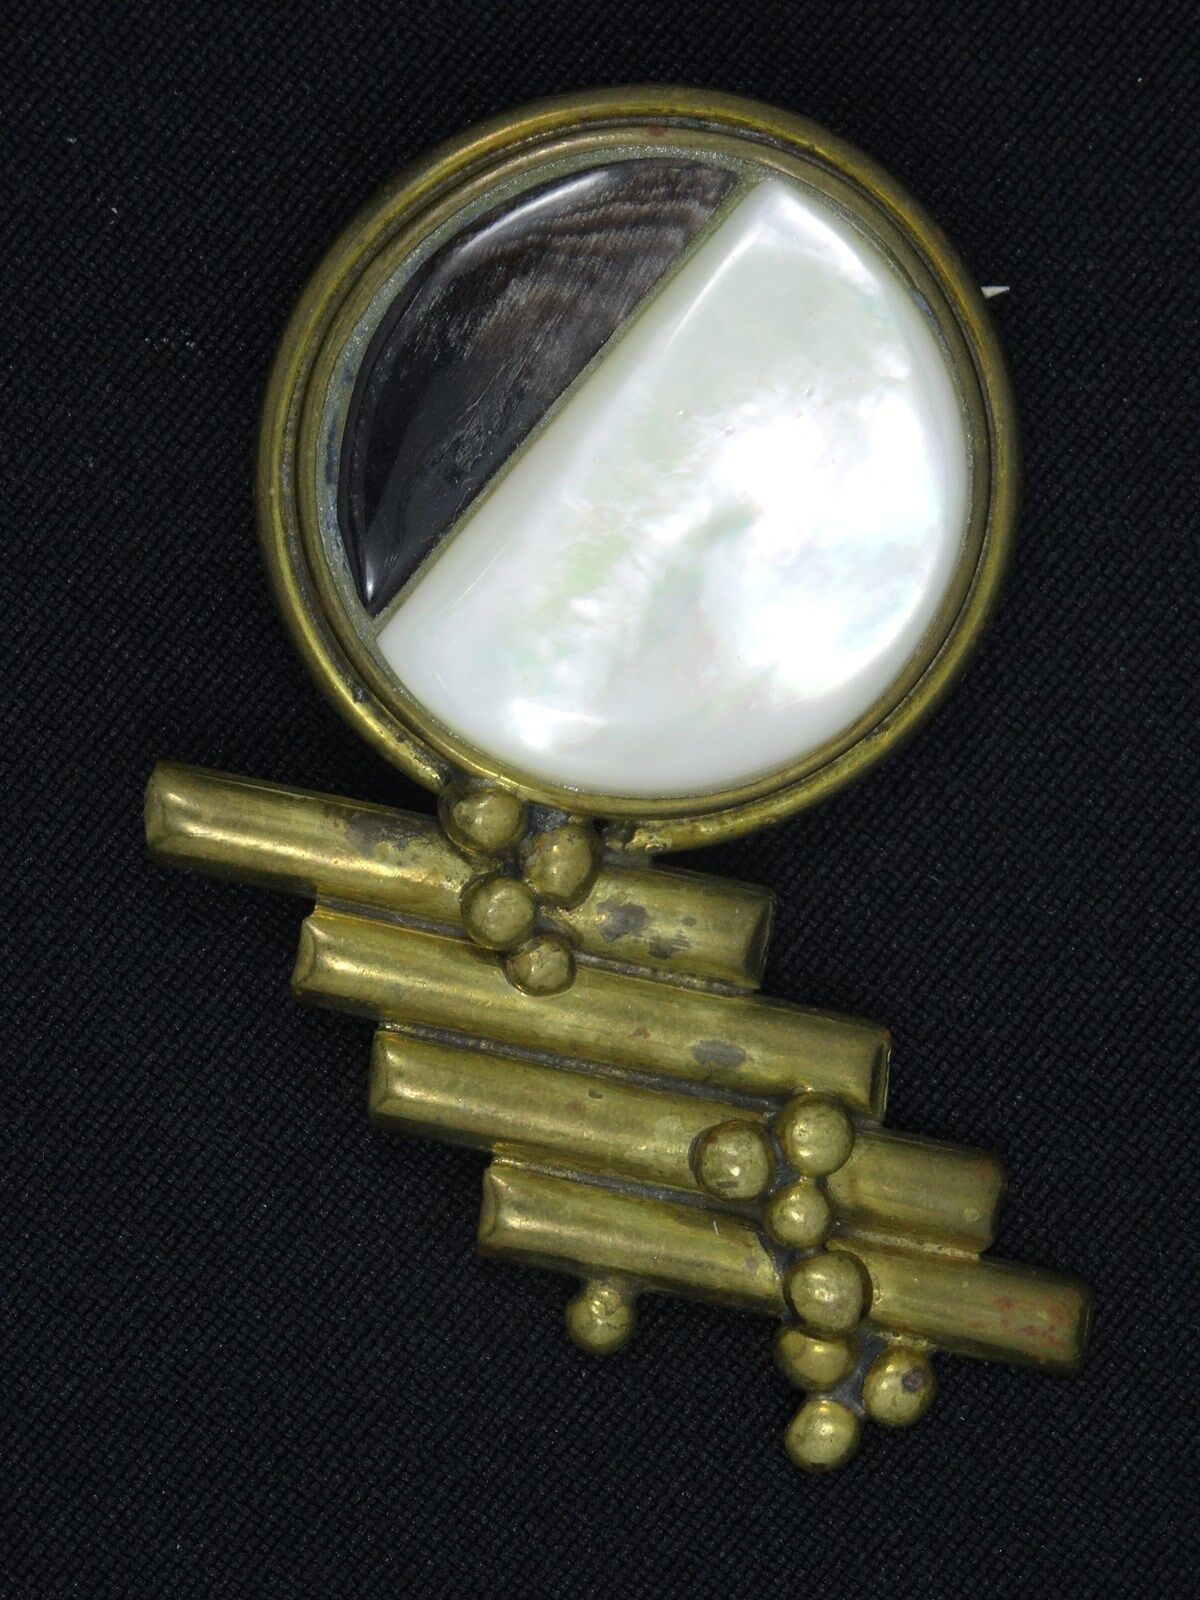 VTG 50's BRUTALIST DESIGN MOTHER of PEARL and AGATE ASYMMETRY PIN BROOCH  2.5